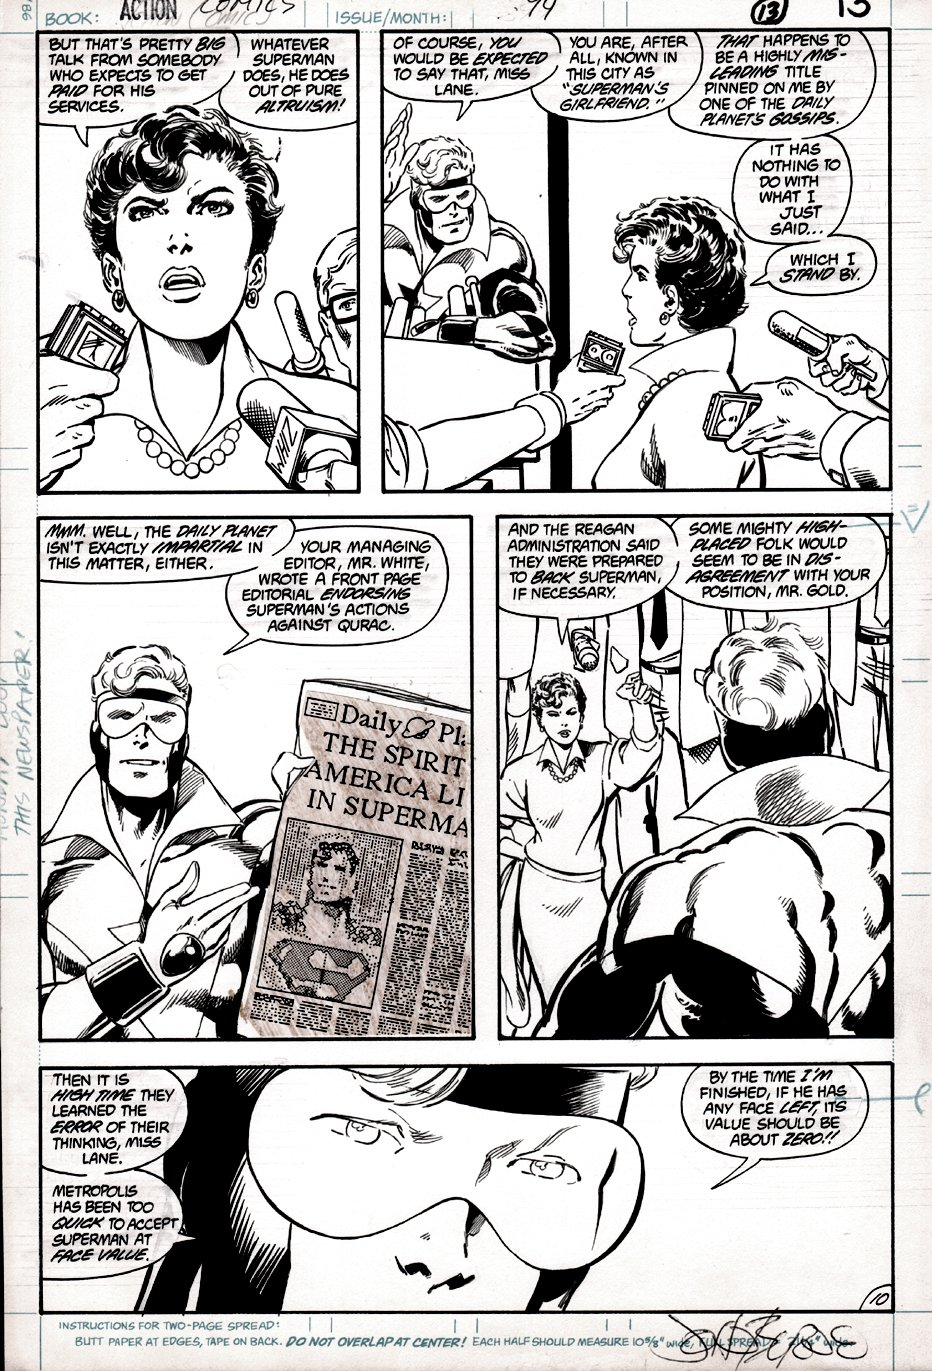 Action Comics #594 p 10 (Booster Gold & Lois Lane Arguing!) 1987